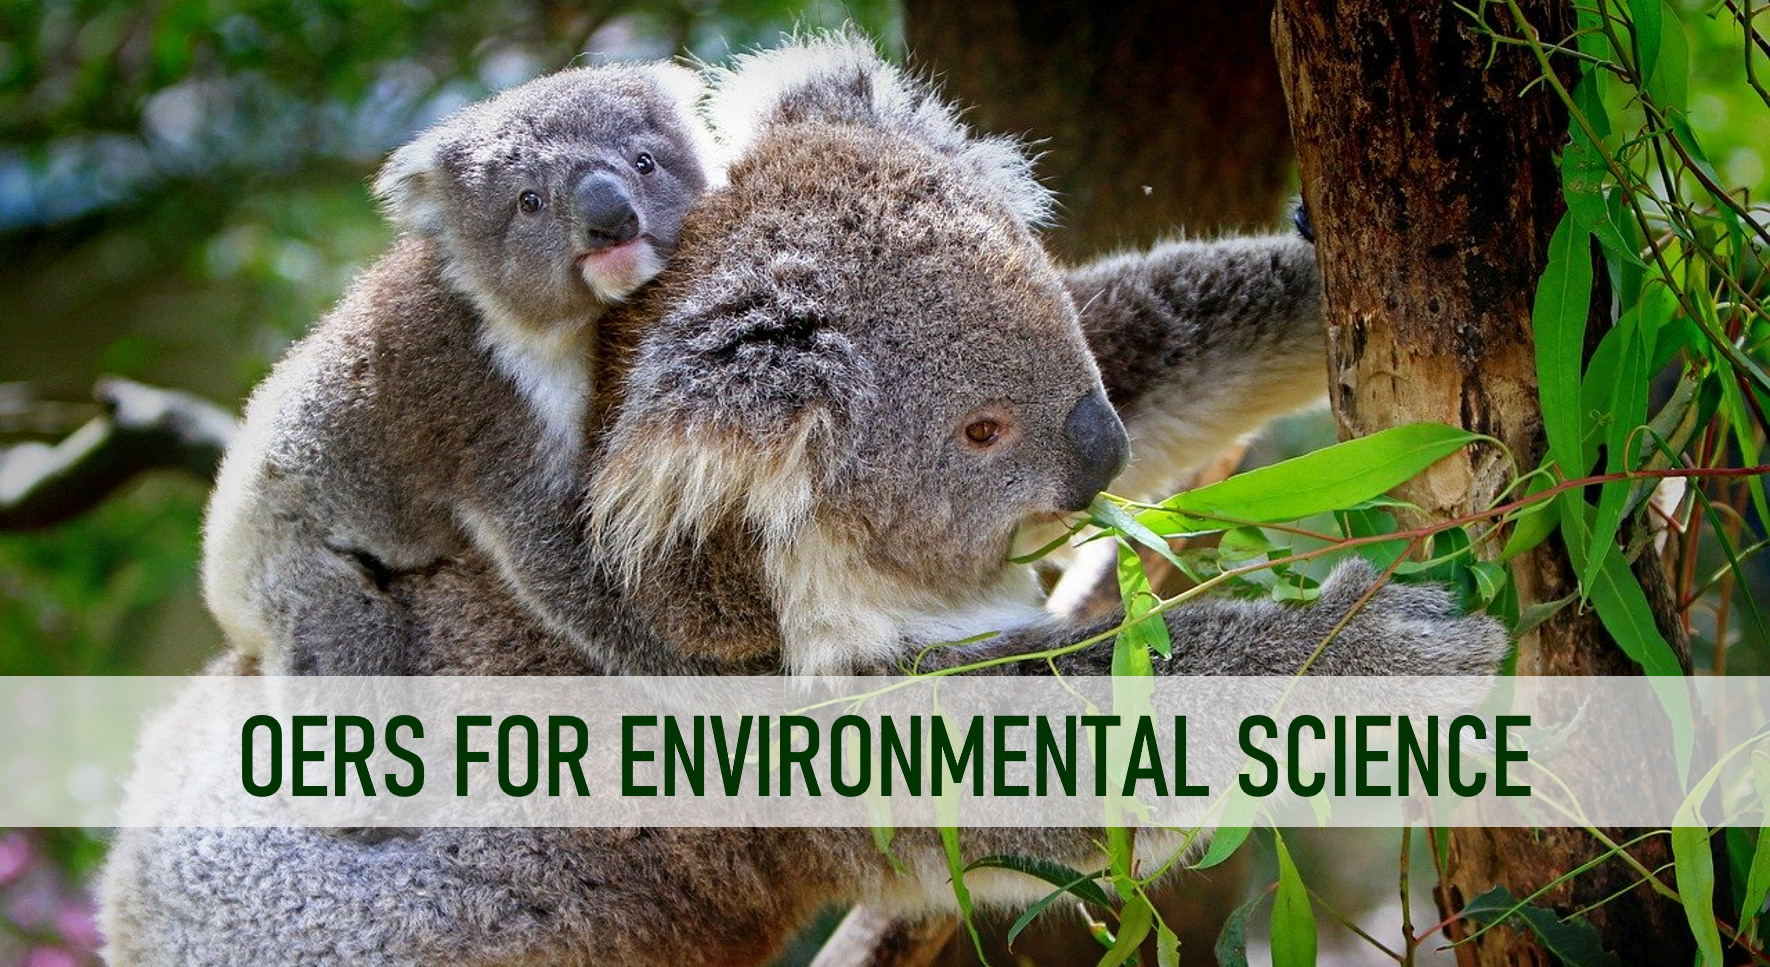 OER's for Environmental Science